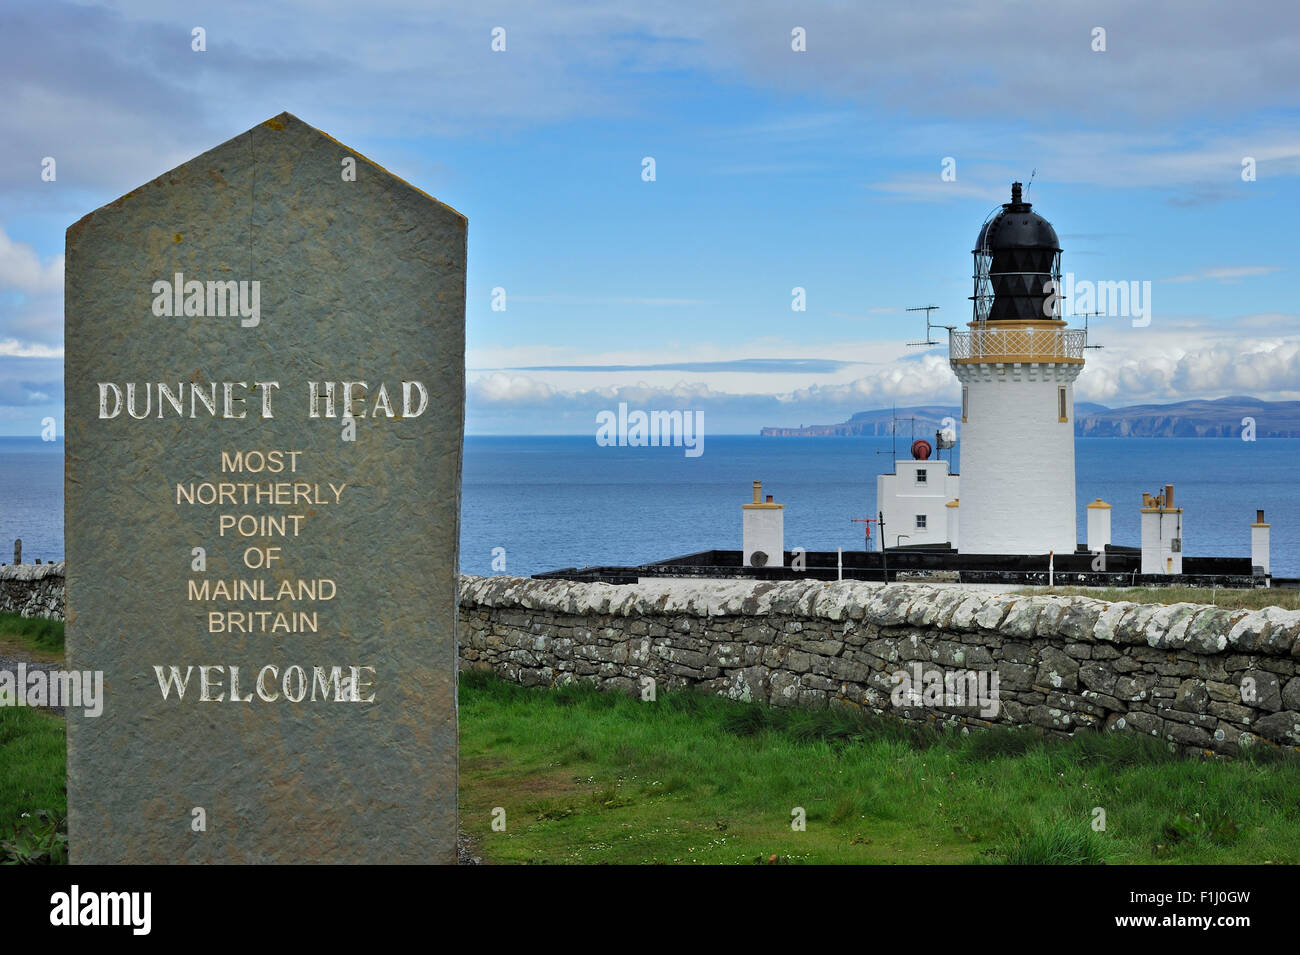 Dunnet Head Lighthouse, the most northerly point of mainland Britain, Caithness, Highlands, Scotland, UK - Stock Image